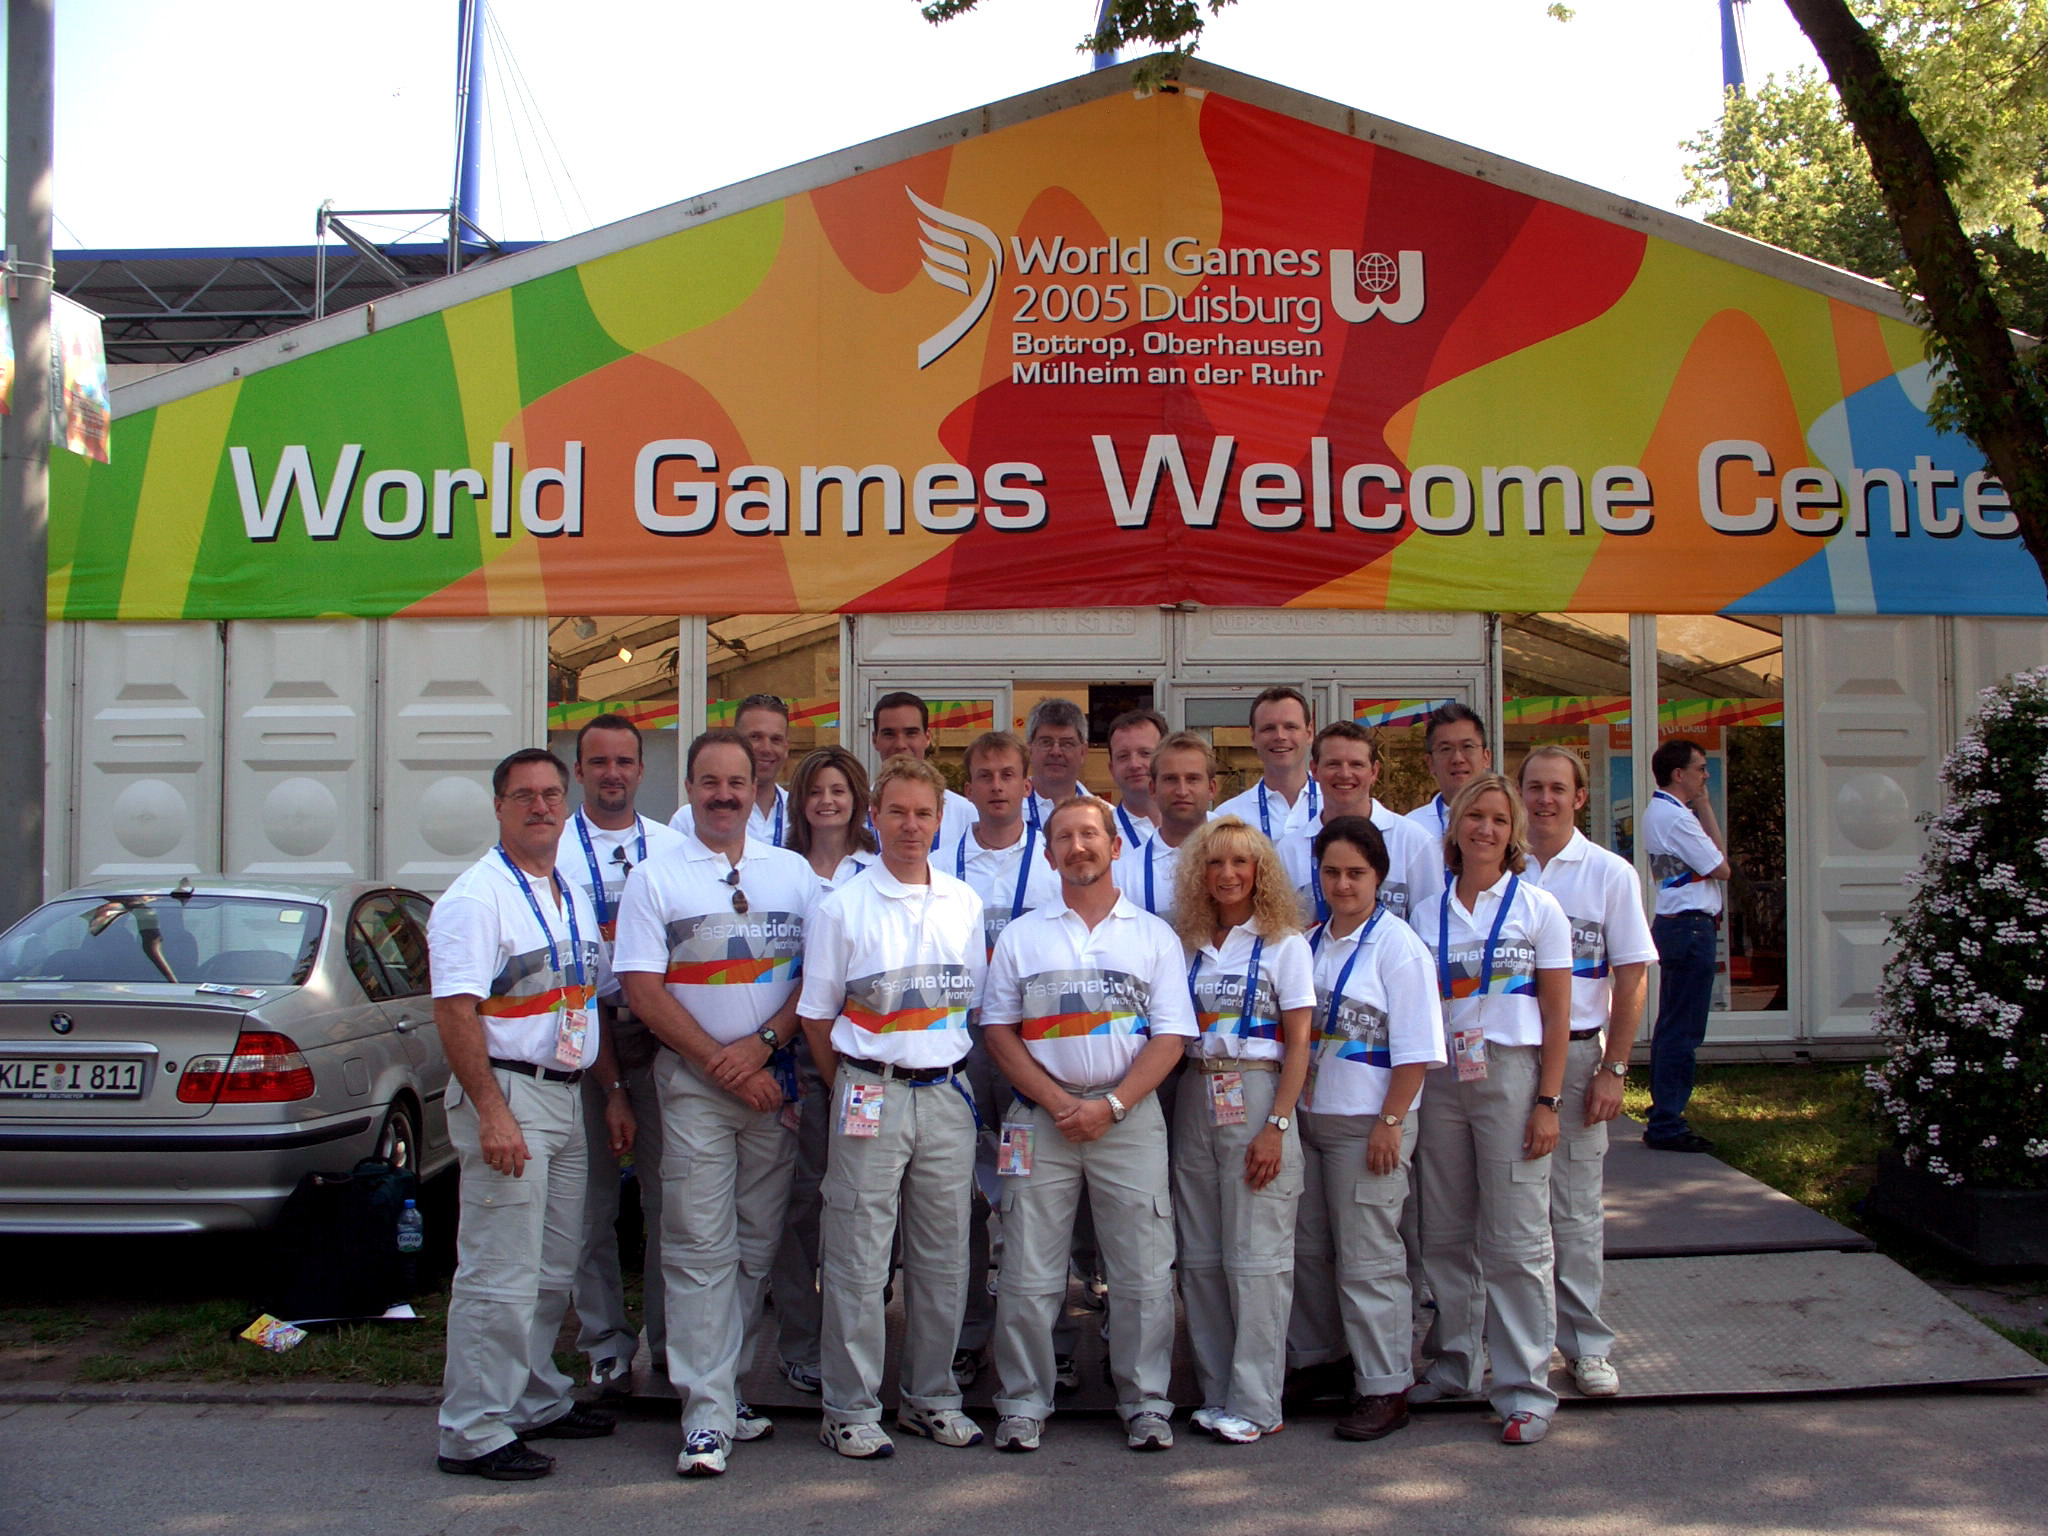 Dr. Ray and his all-star cast of his healthcare physicians at the 2005 World Games in Duisburg, Germany. Dr. Ray is tasked with selecting the best chiropractors from all over the world to form this renown team of doctors.